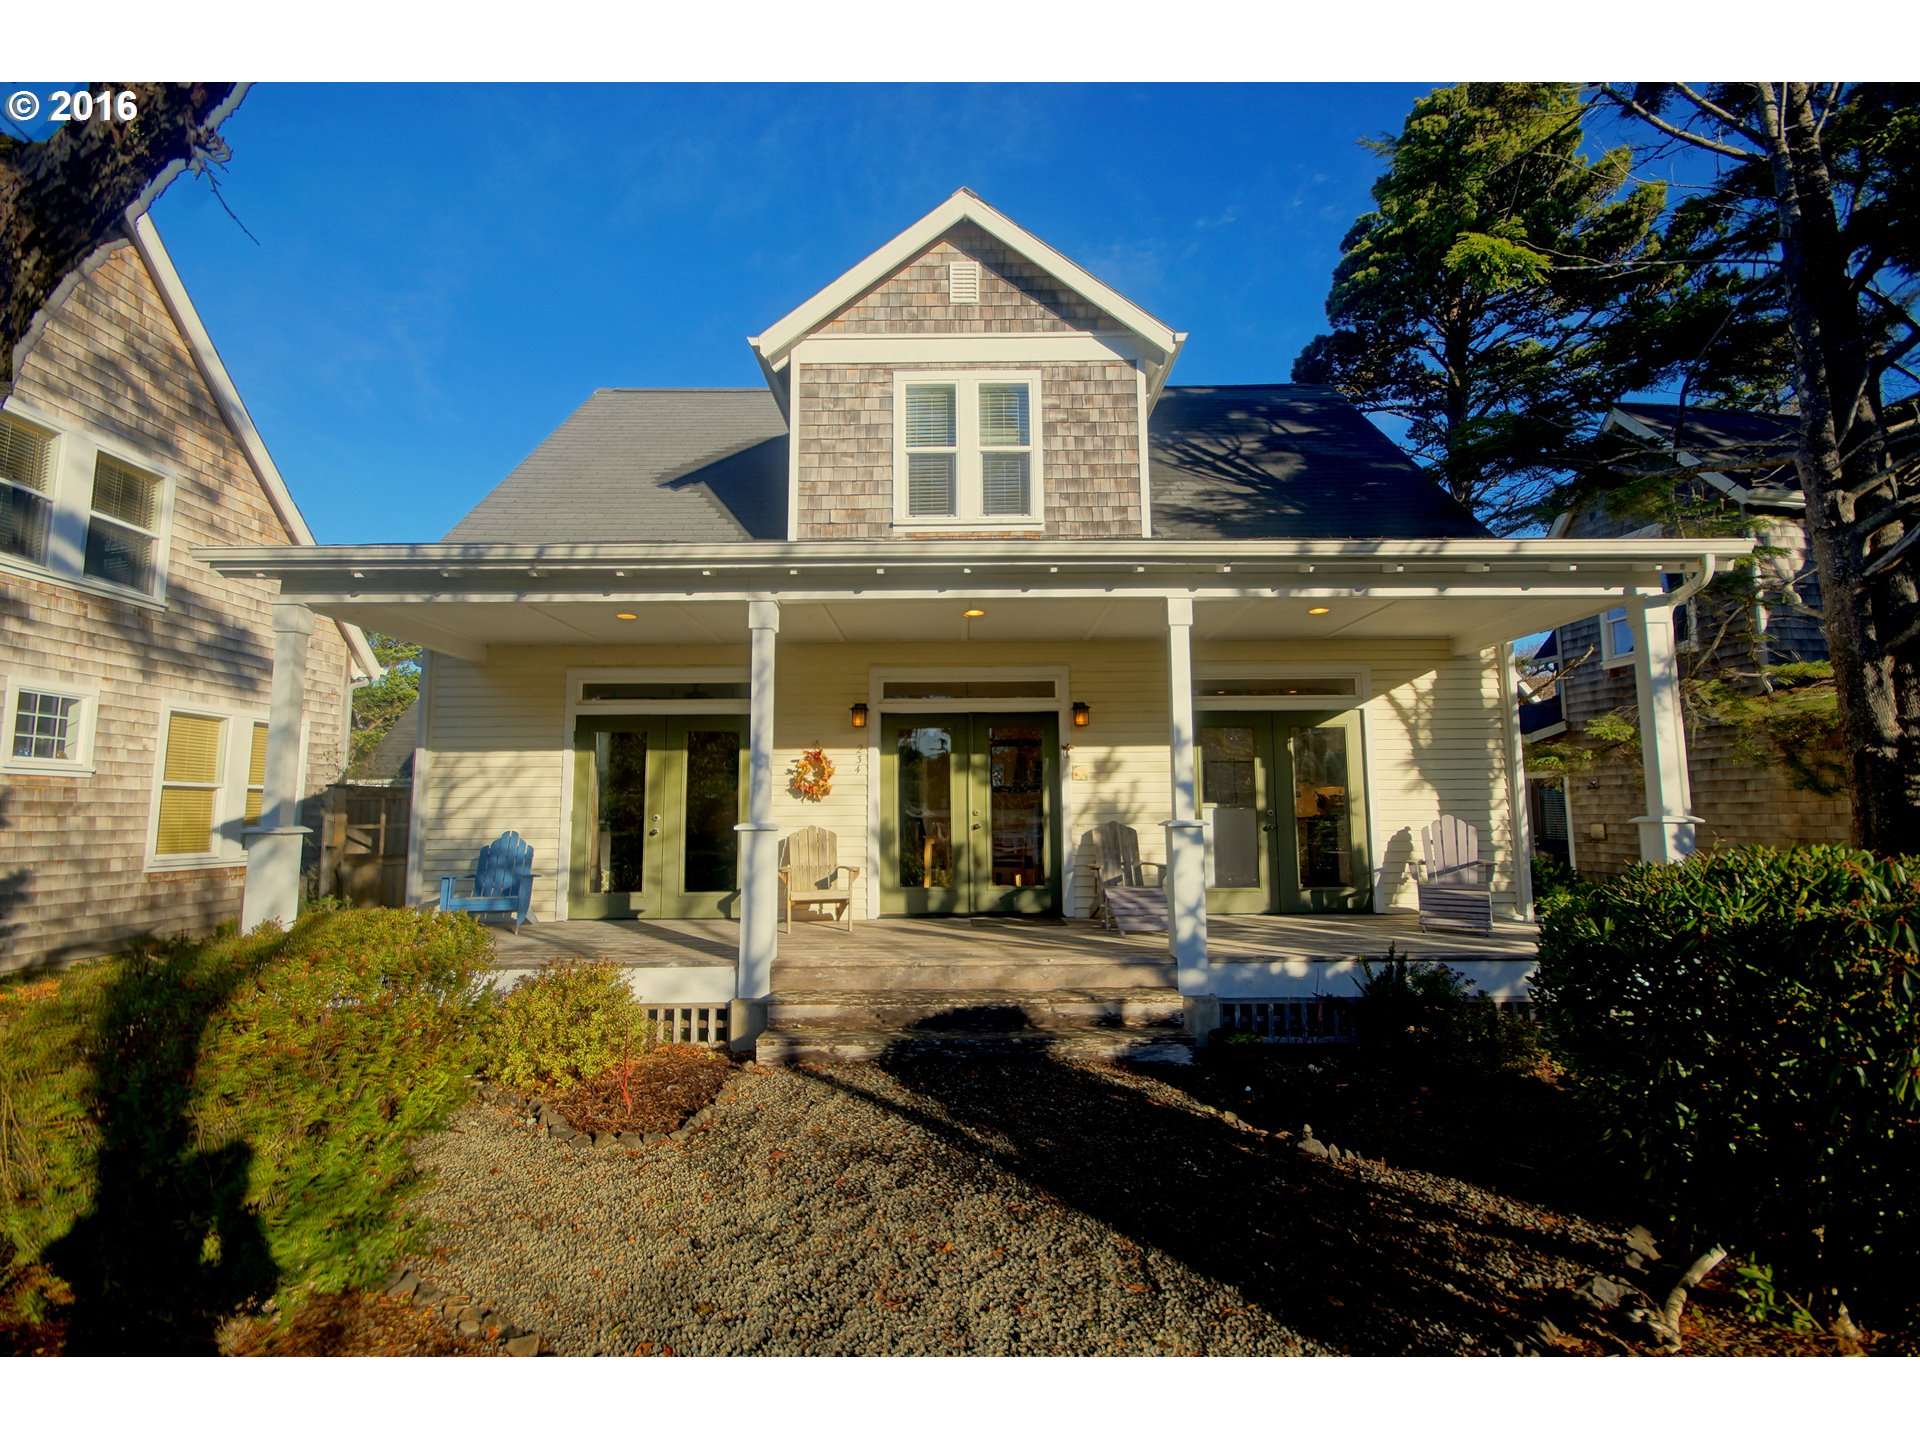 234 Bunchberry Way, Depoe Bay, OR